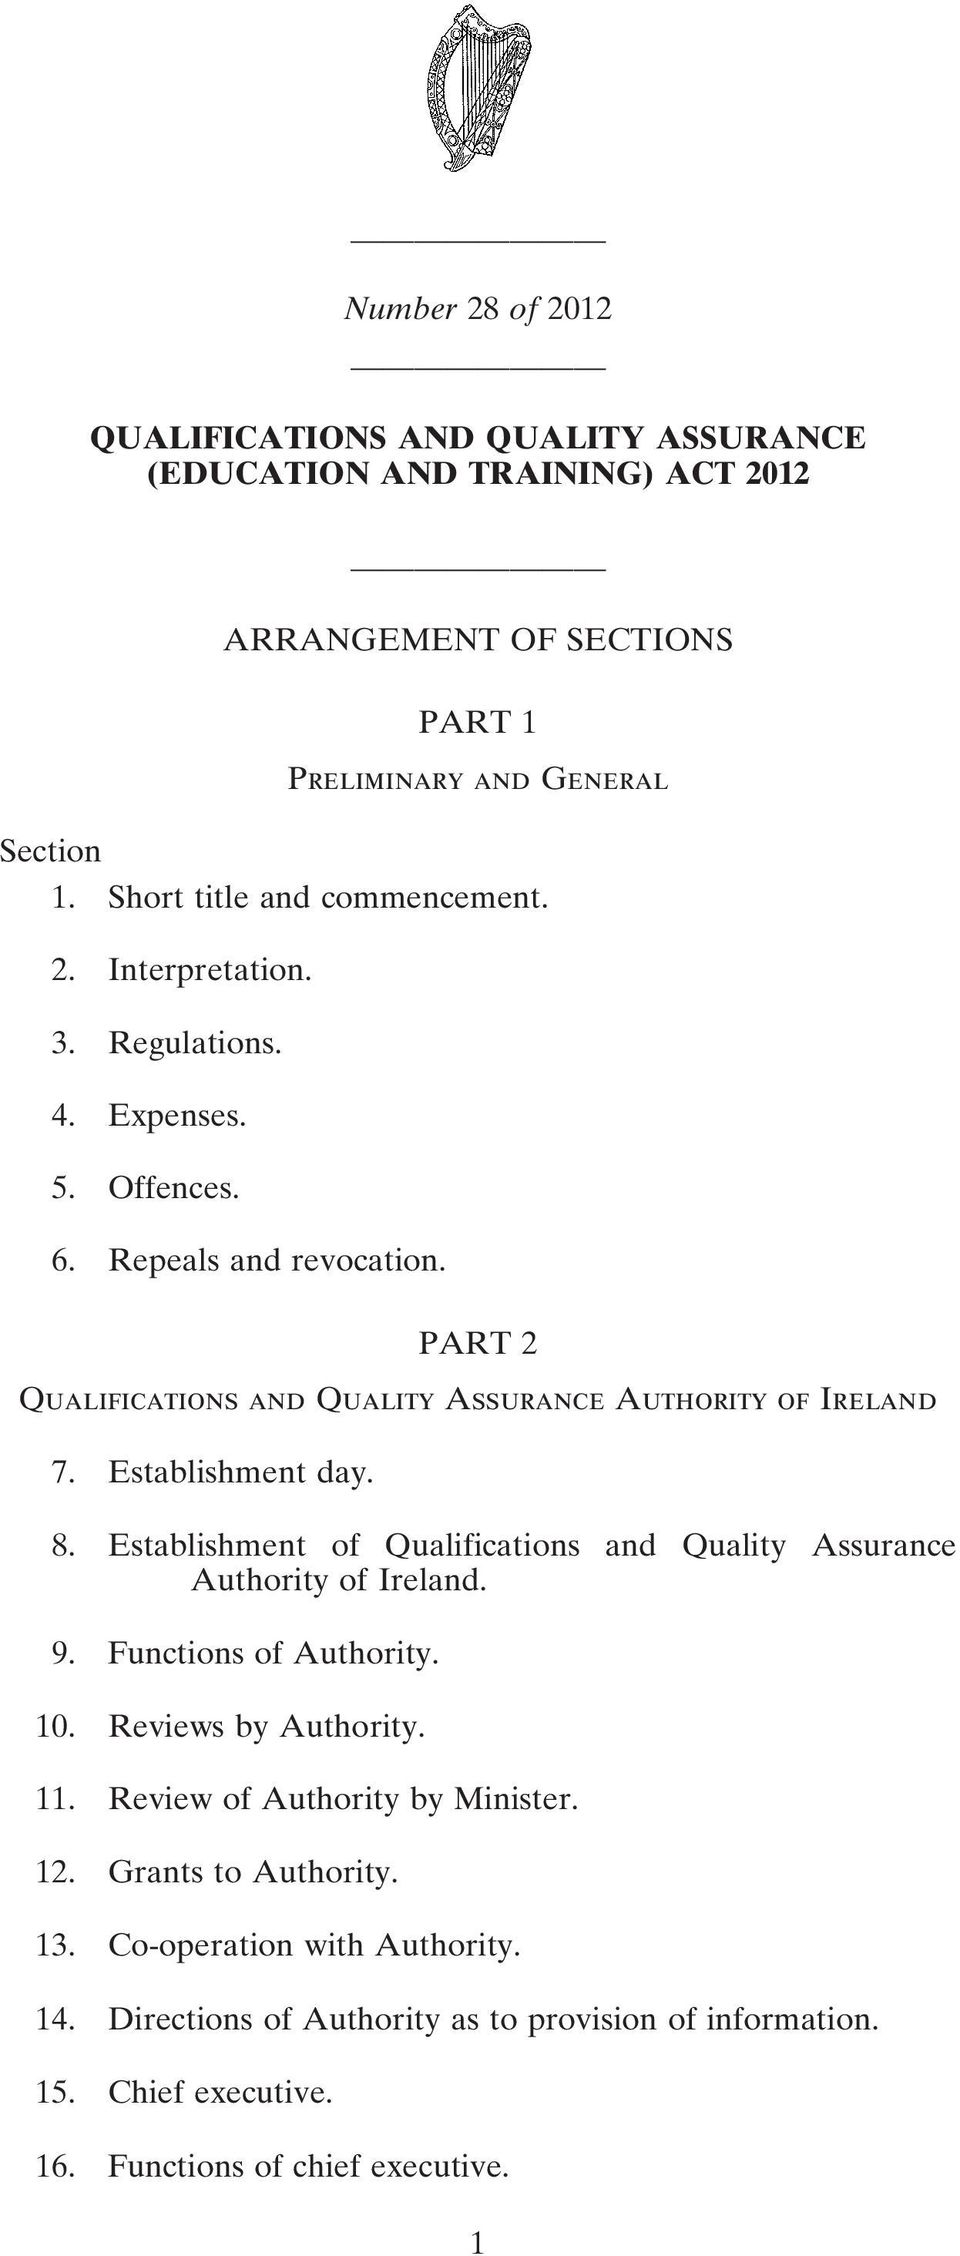 PART 2 Qualifications and Quality Assurance Authority of Ireland 7. Establishment day. 8. Establishment of Qualifications and Quality Assurance Authority of Ireland. 9.